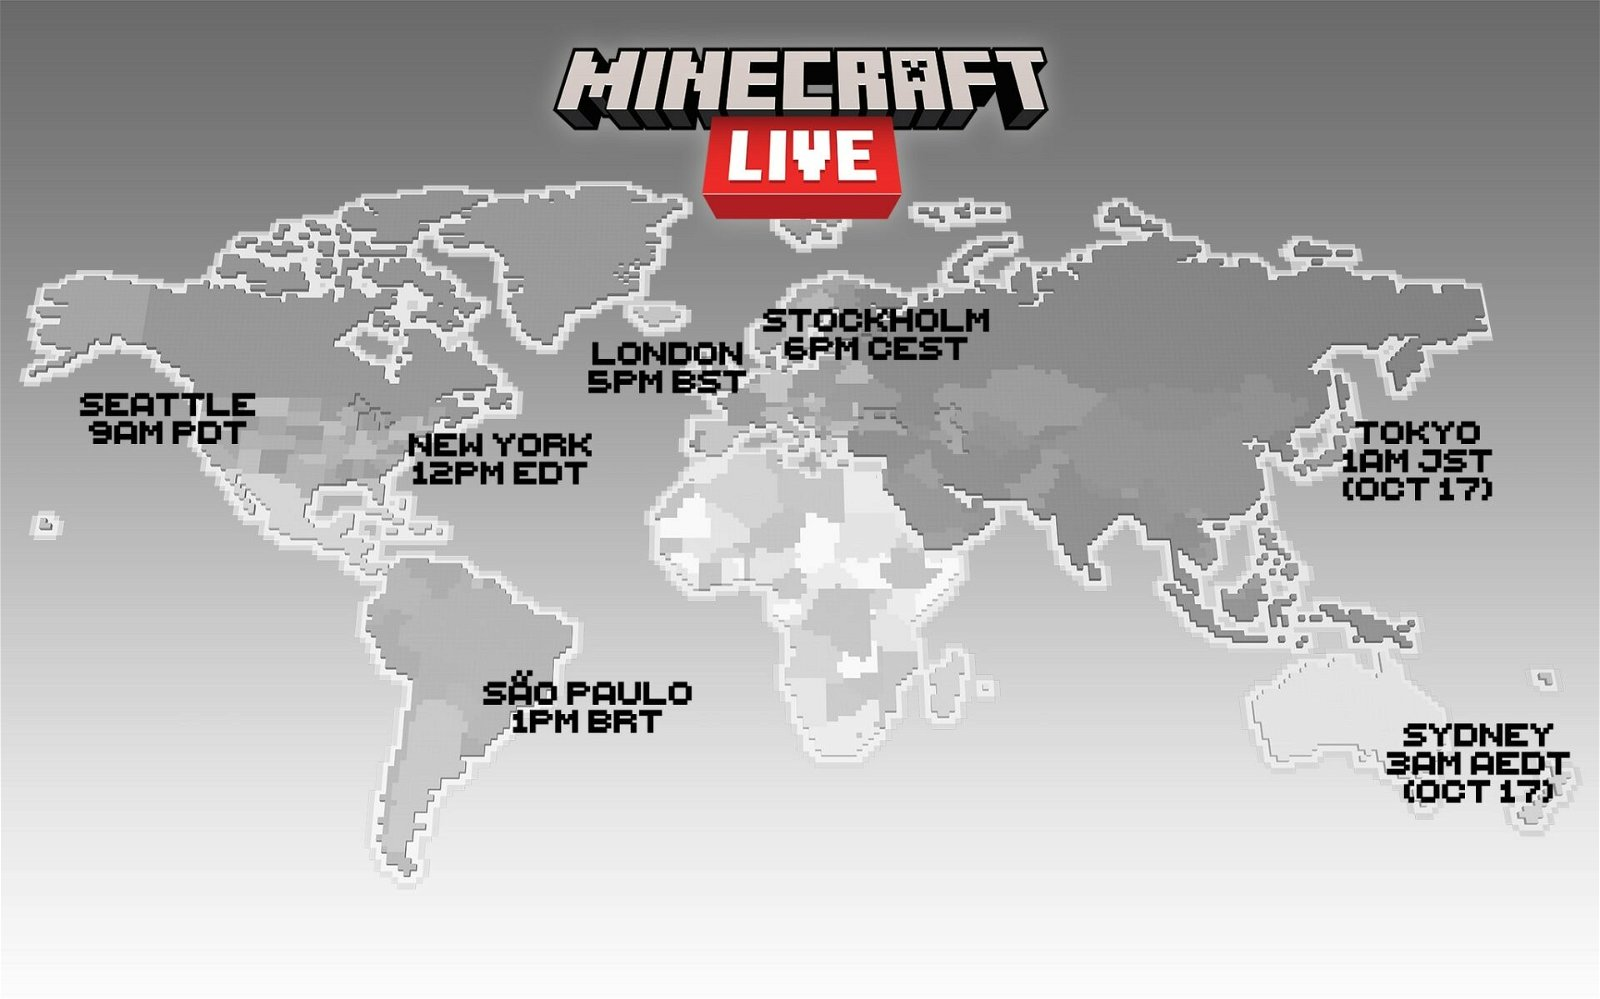 Map Of The World Showing Minecraft Live Broadcast Times For Major Cities